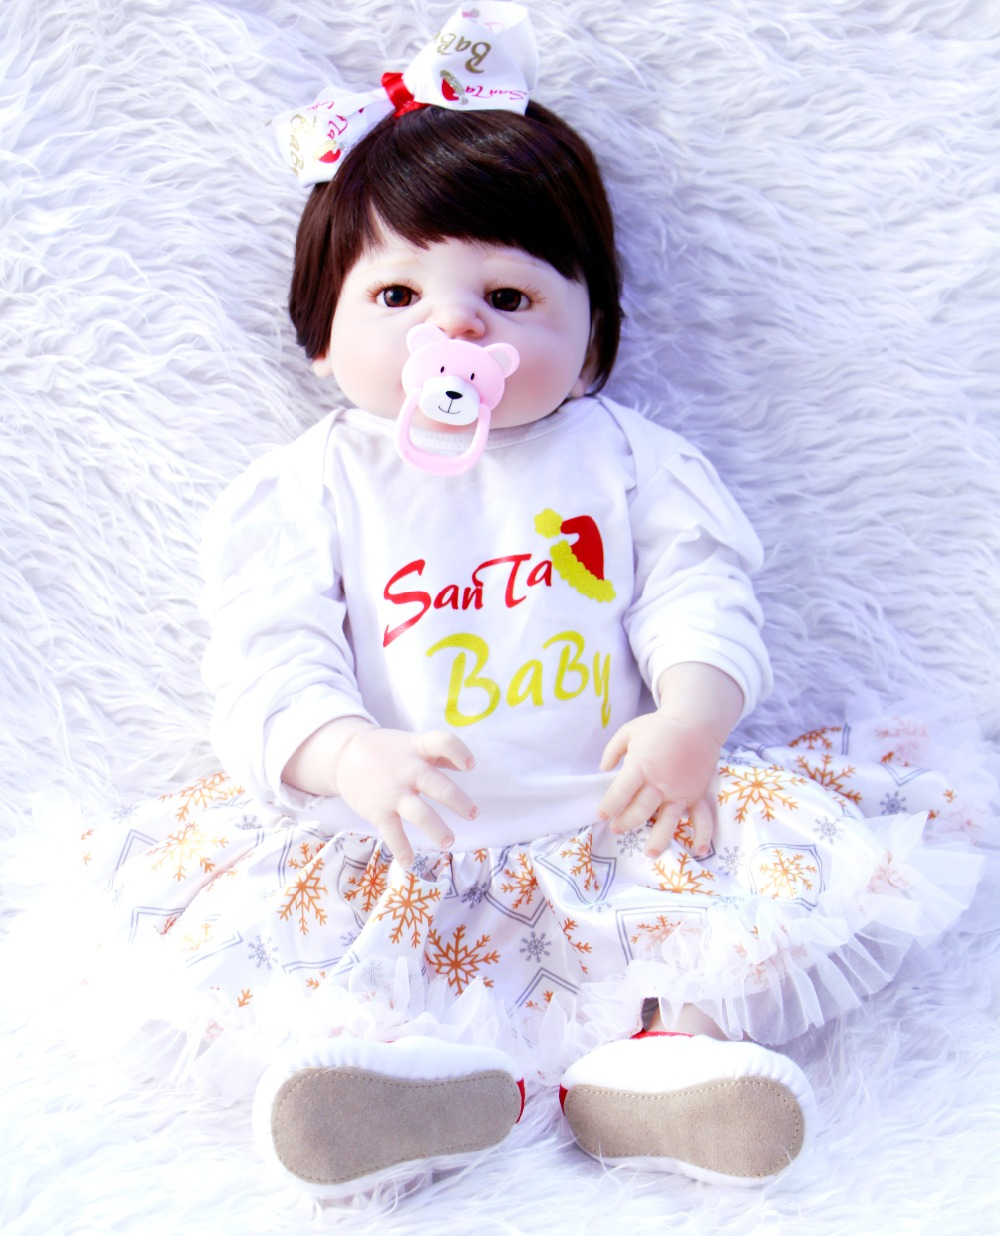 23 Full Silicone Body Reborn babies newborn lifelike collectible play hose toy princess toddler dolls kids birthday gifts23 Full Silicone Body Reborn babies newborn lifelike collectible play hose toy princess toddler dolls kids birthday gifts